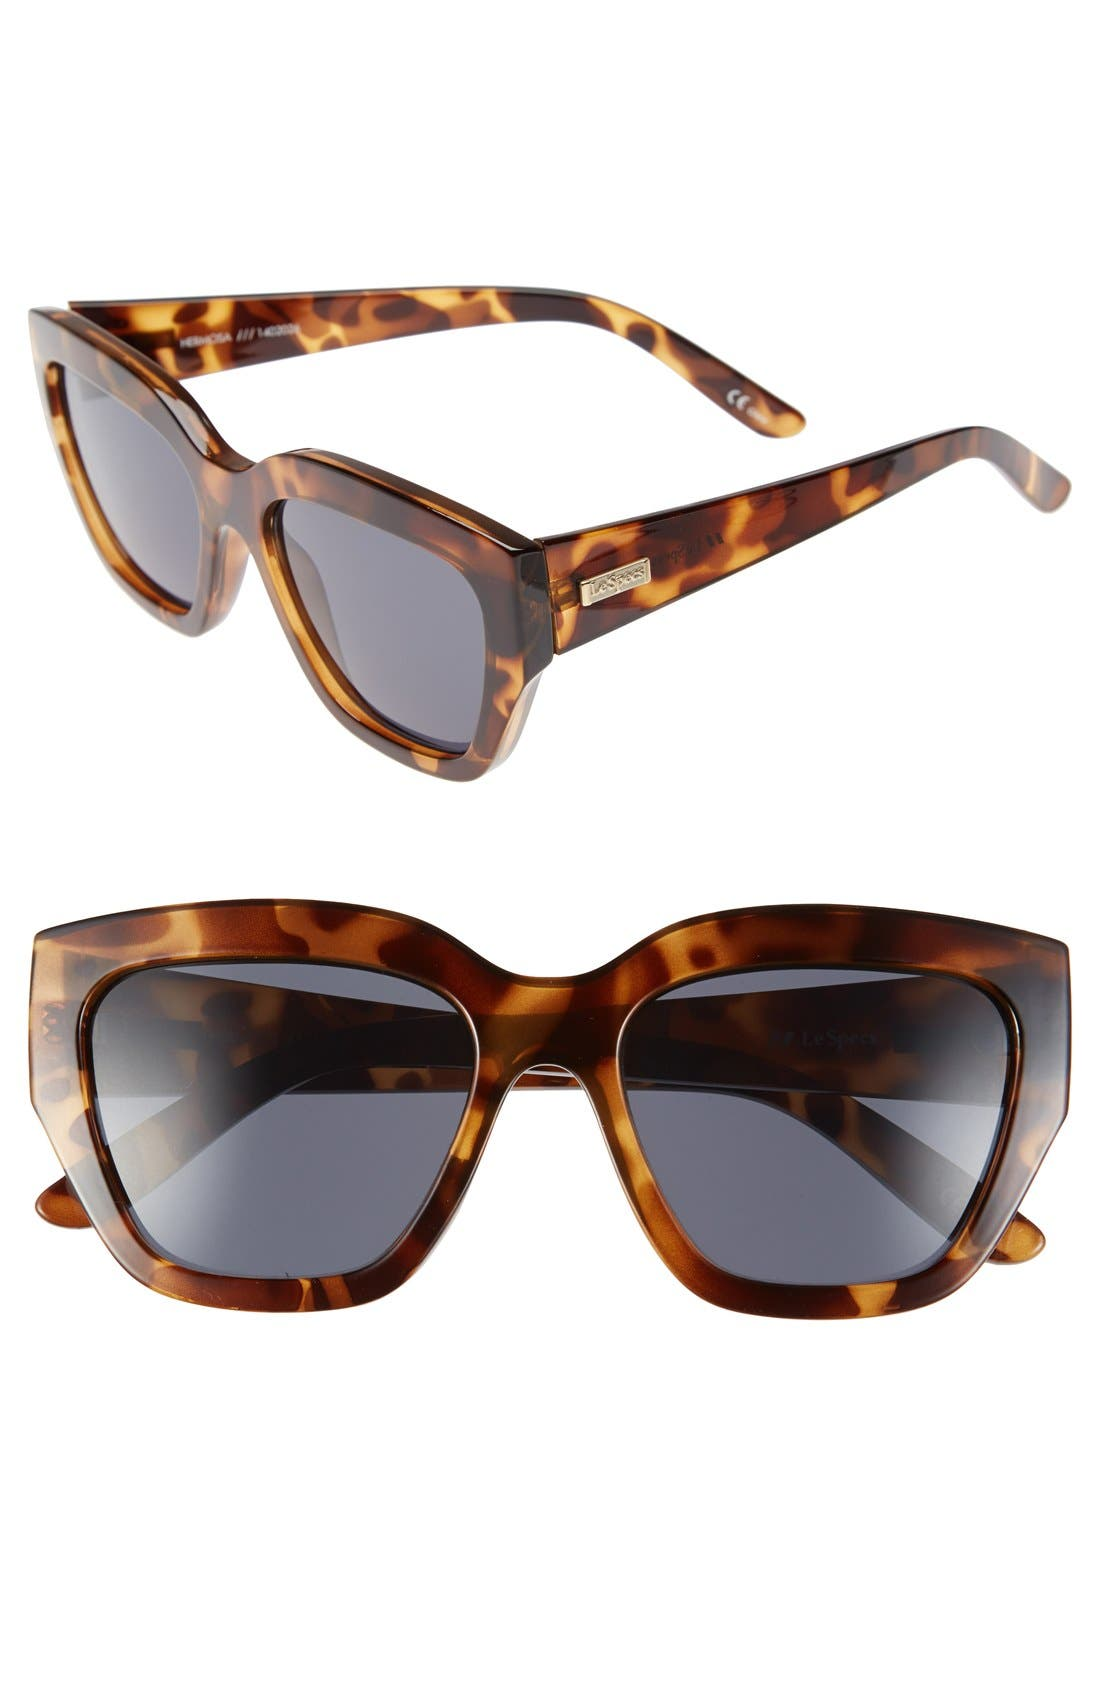 Alternate Image 1 Selected - Le Specs 'Hermosa' 54mm Oversized Cat Eye Sunglasses